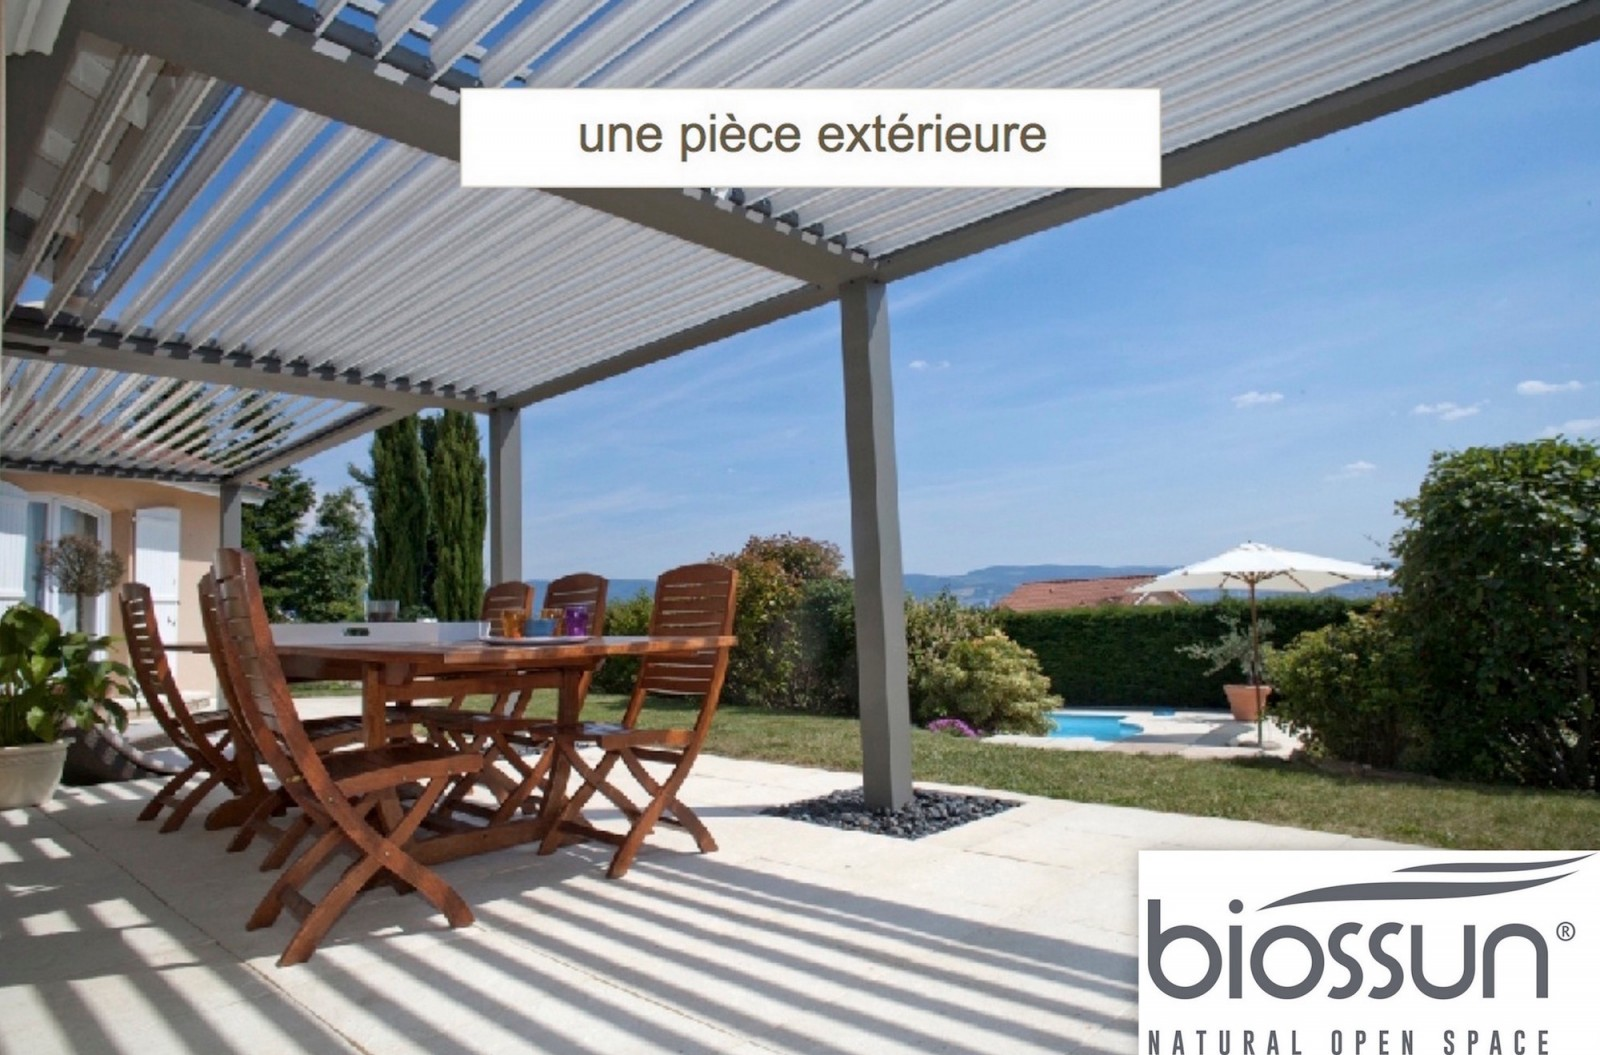 prix d une pergola finest luarrive du printemps est luoccasion pour designmag de vous prsenter. Black Bedroom Furniture Sets. Home Design Ideas